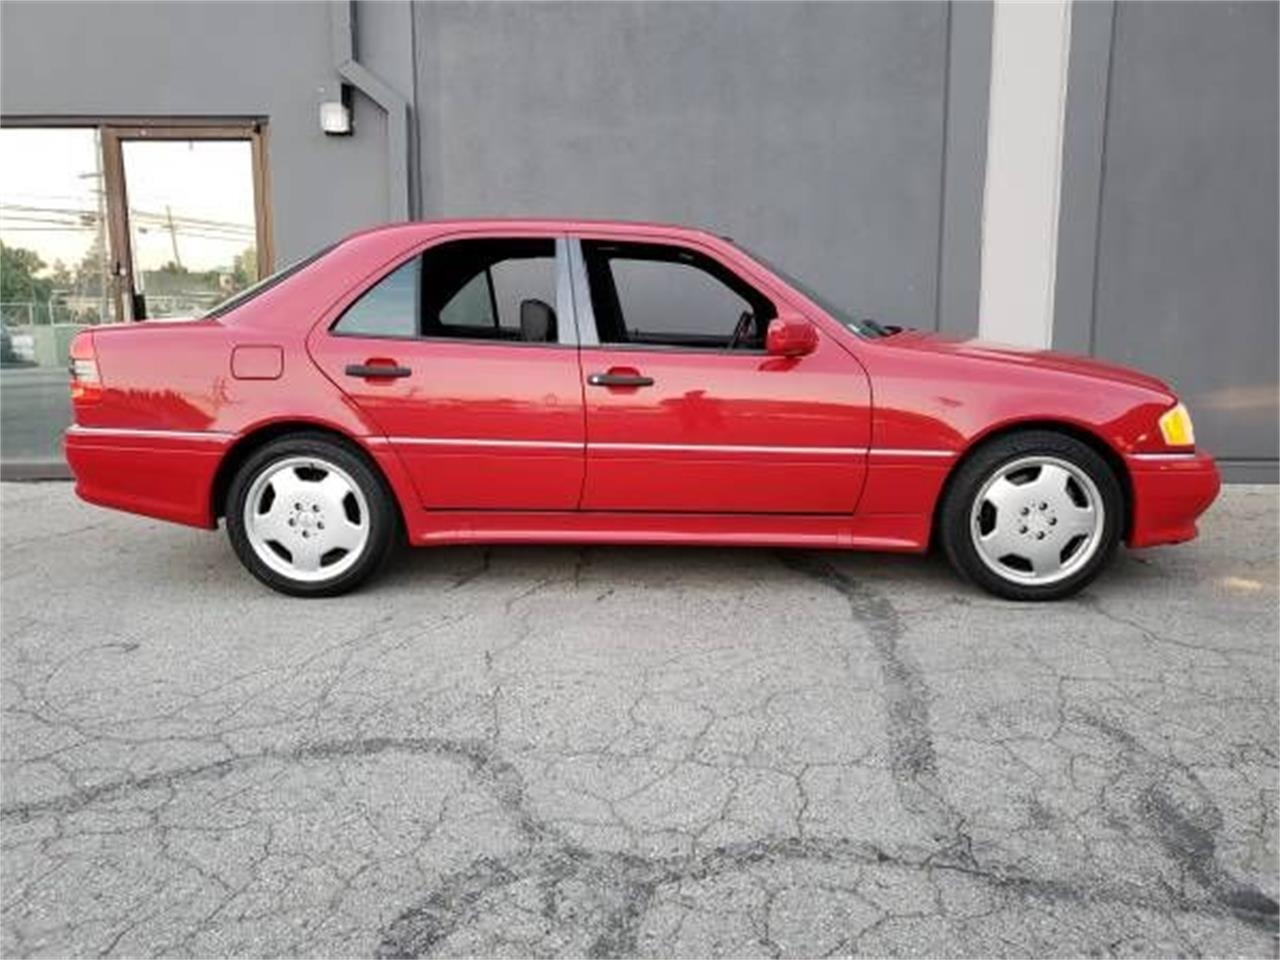 for sale 1995 mercedes-benz c-class in cadillac, michigan cars - cadillac, mi at geebo